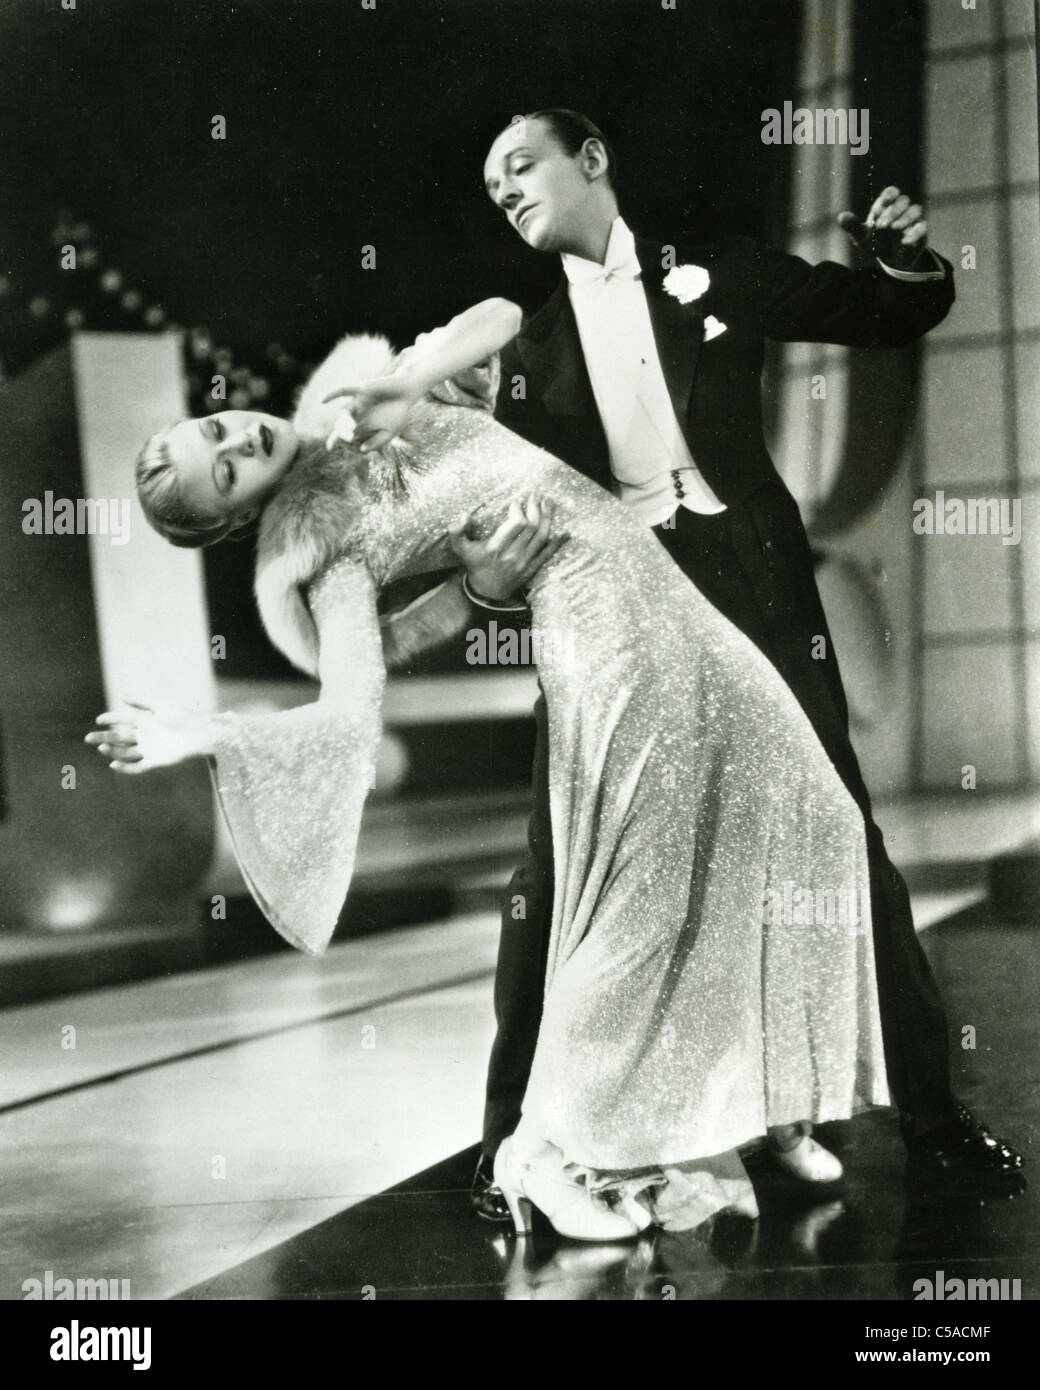 Fred Astaire And Ginger Rogers Us Film Dancers And Singers Stock Photo Alamy